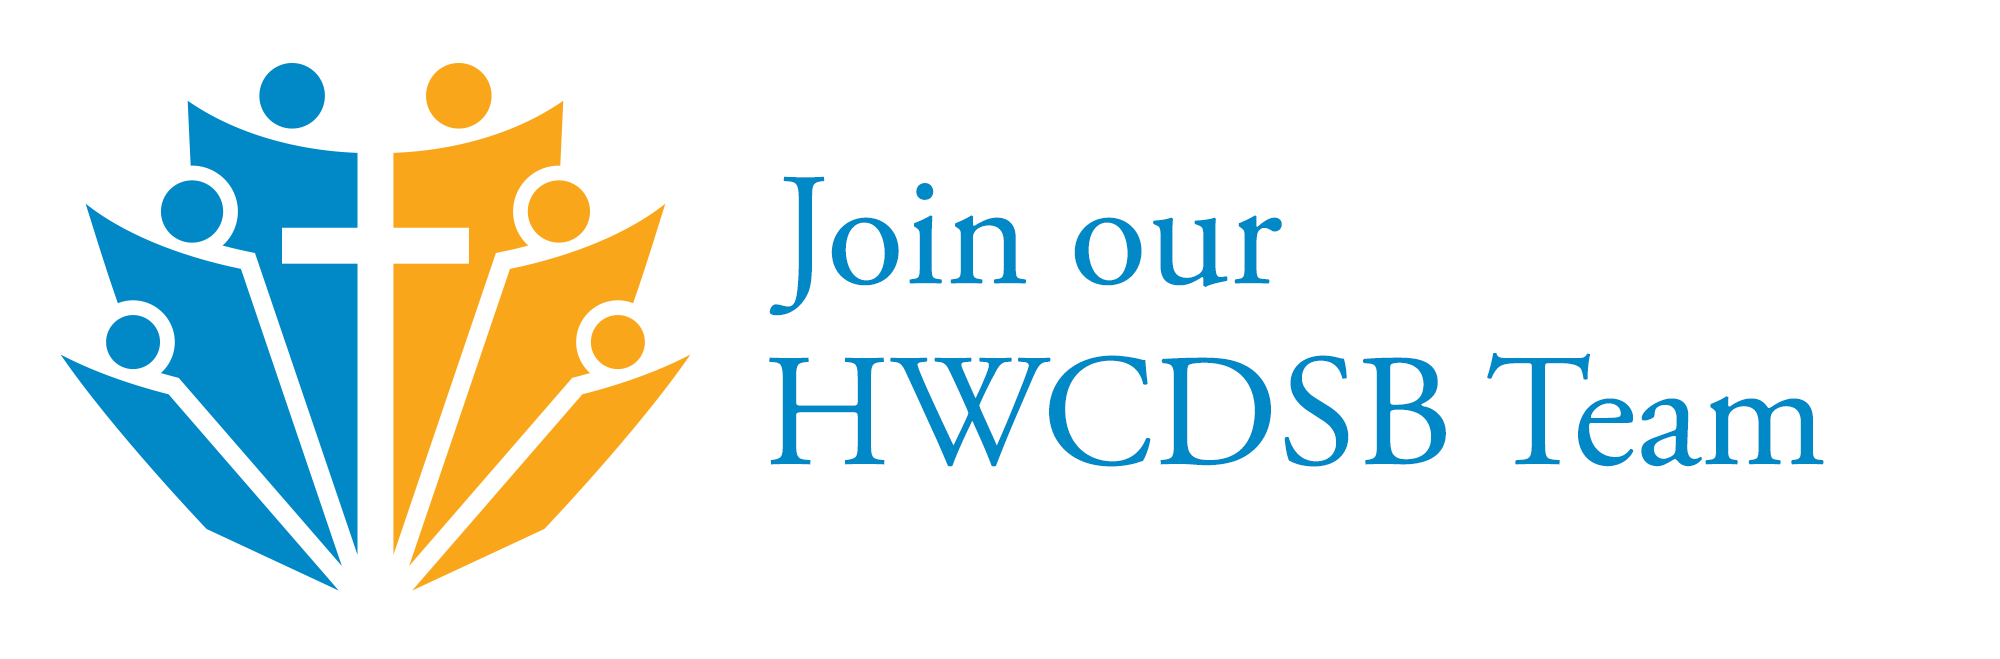 Join Our HWCDSB Team